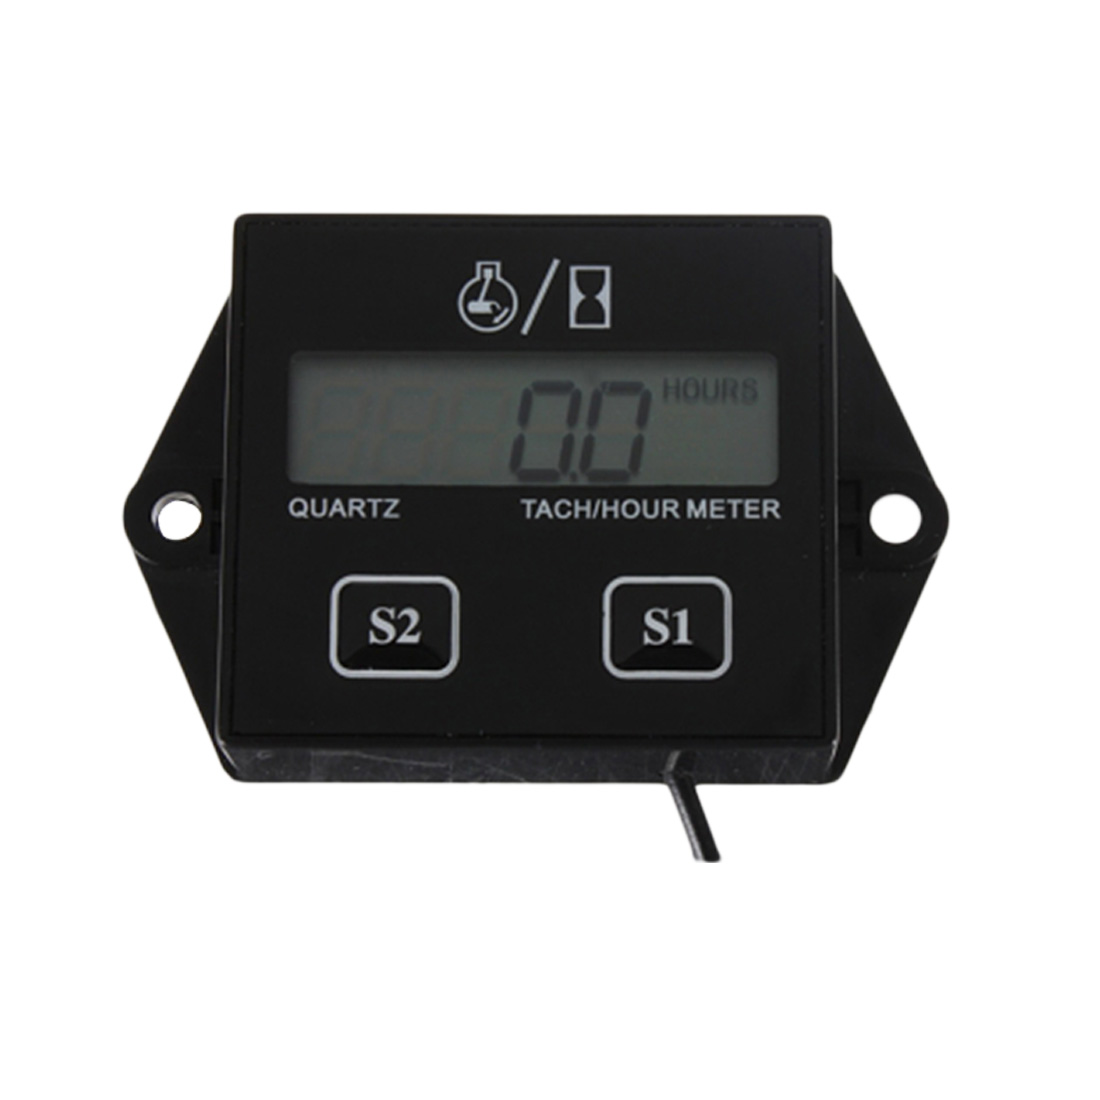 Black Tech Hour Meter Digital Engine Tachometer Gauge Inductive For Motorcycle Motor Boat Car Stroke Engine Spark New 1pcsBlack Tech Hour Meter Digital Engine Tachometer Gauge Inductive For Motorcycle Motor Boat Car Stroke Engine Spark New 1pcs